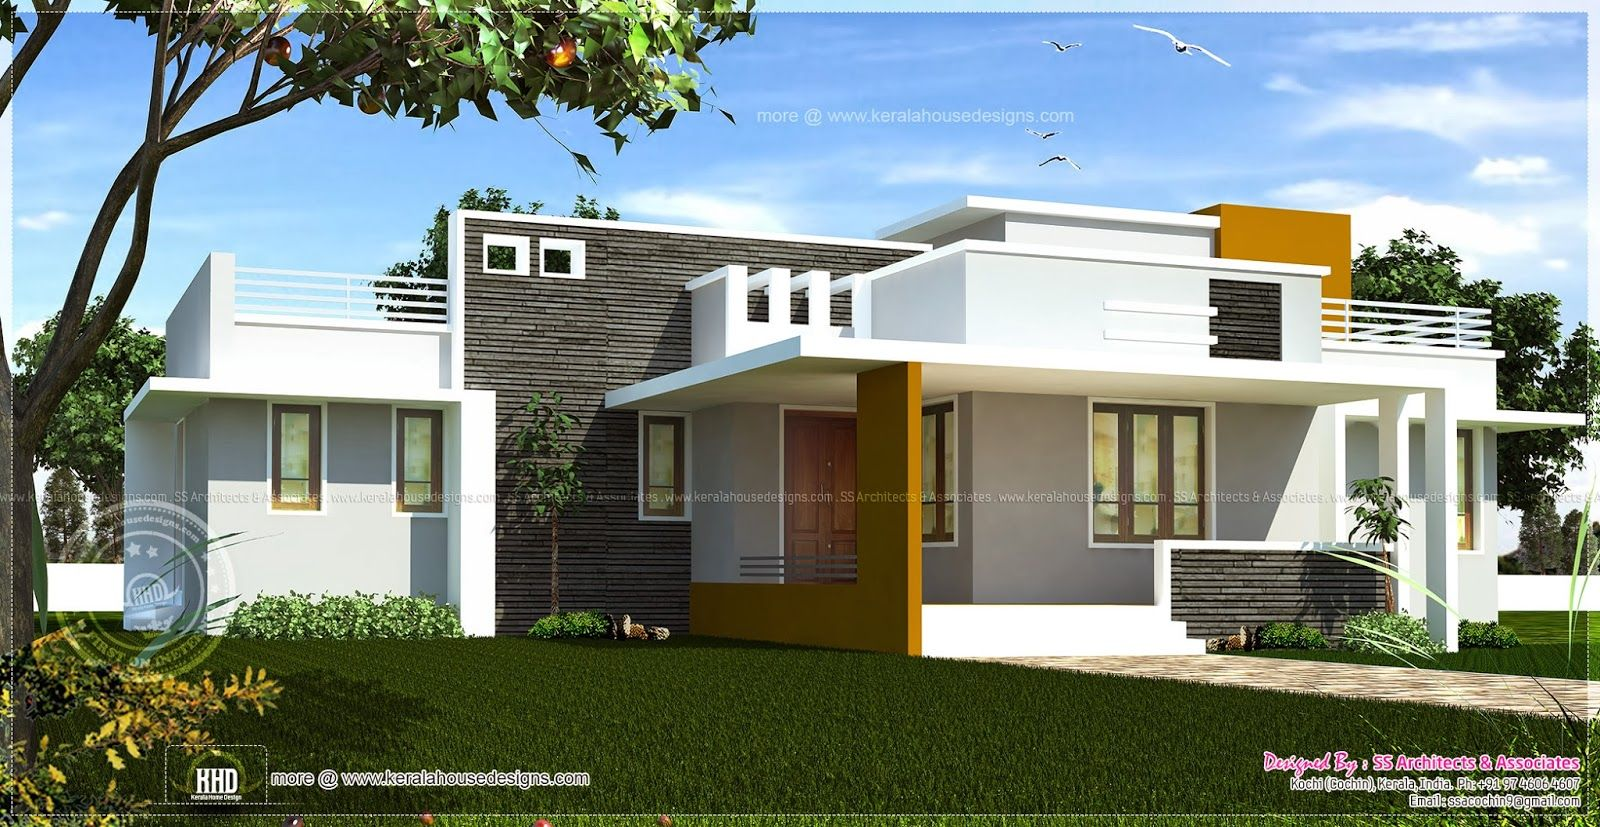 Excellent single home designs single floor contemporary Modern house 1 floor